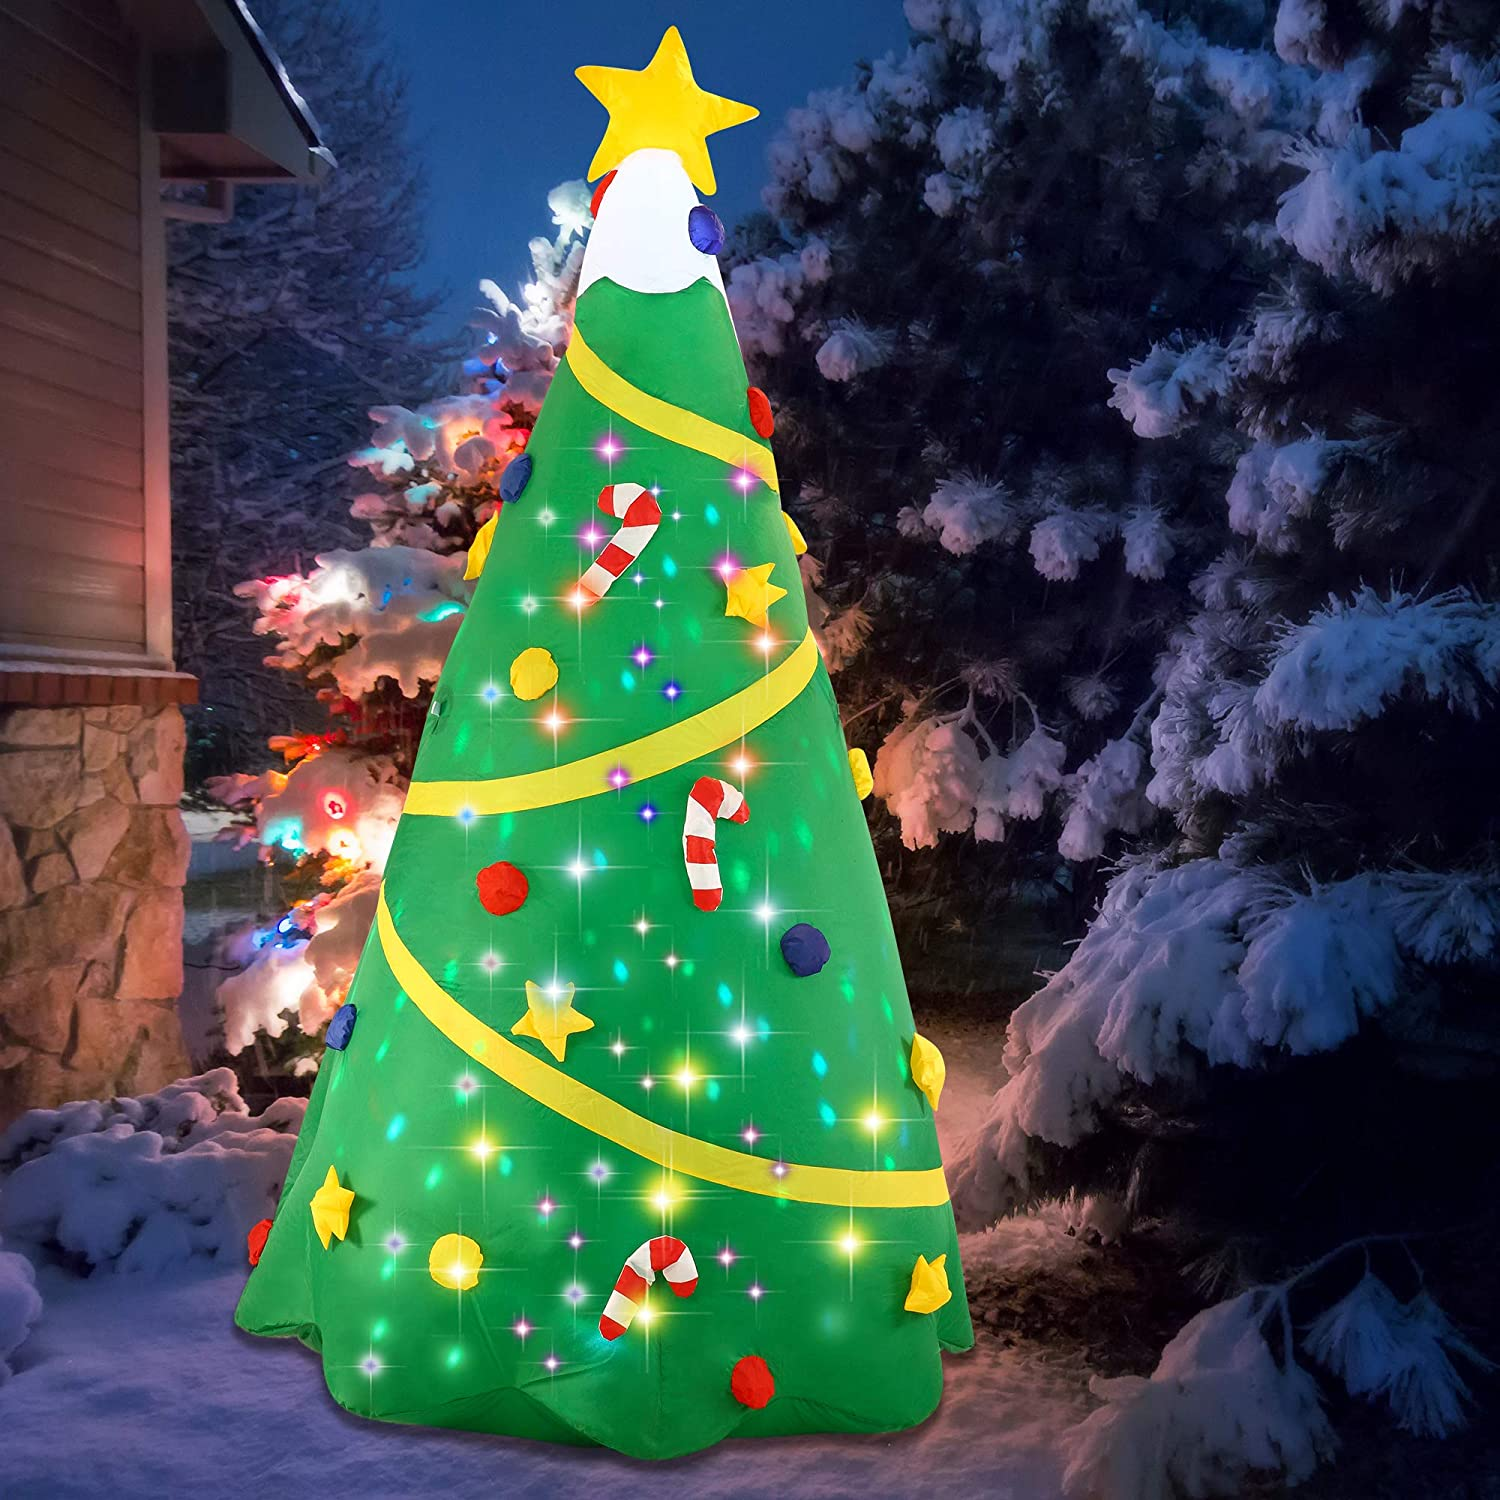 Amazon Com Joiedomi Christmas Inflatable Decoration 8 Ft Christmas Tree With Light With Build In Projection Blow Up Self Inflatables For Christmas Party Indoor Outdoor Yard Garden Lawn Décor Garden Outdoor